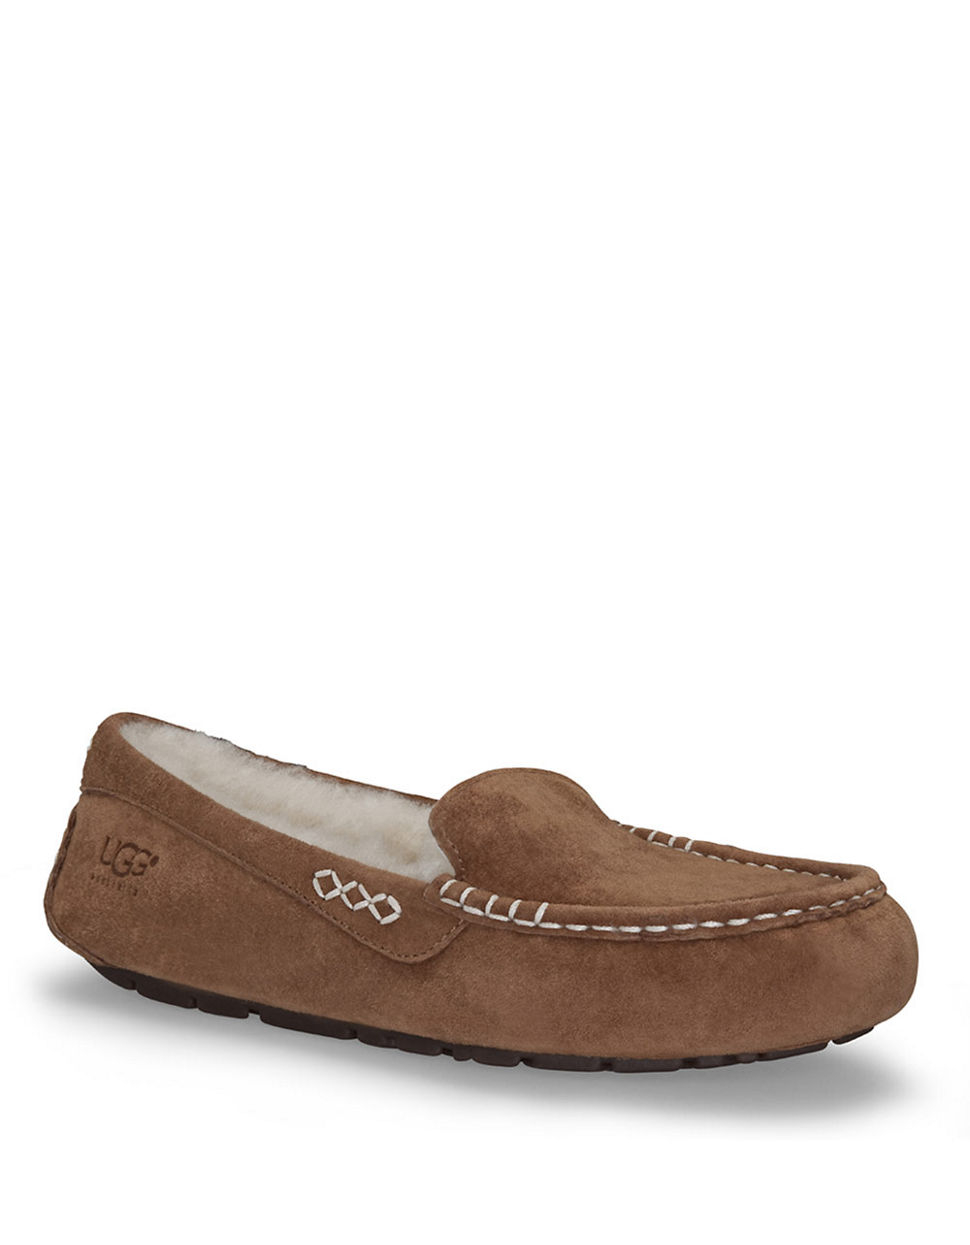 0630a931c72 Ugg Australia Ansley Suede Moccasin Slippers - cheap watches mgc-gas.com